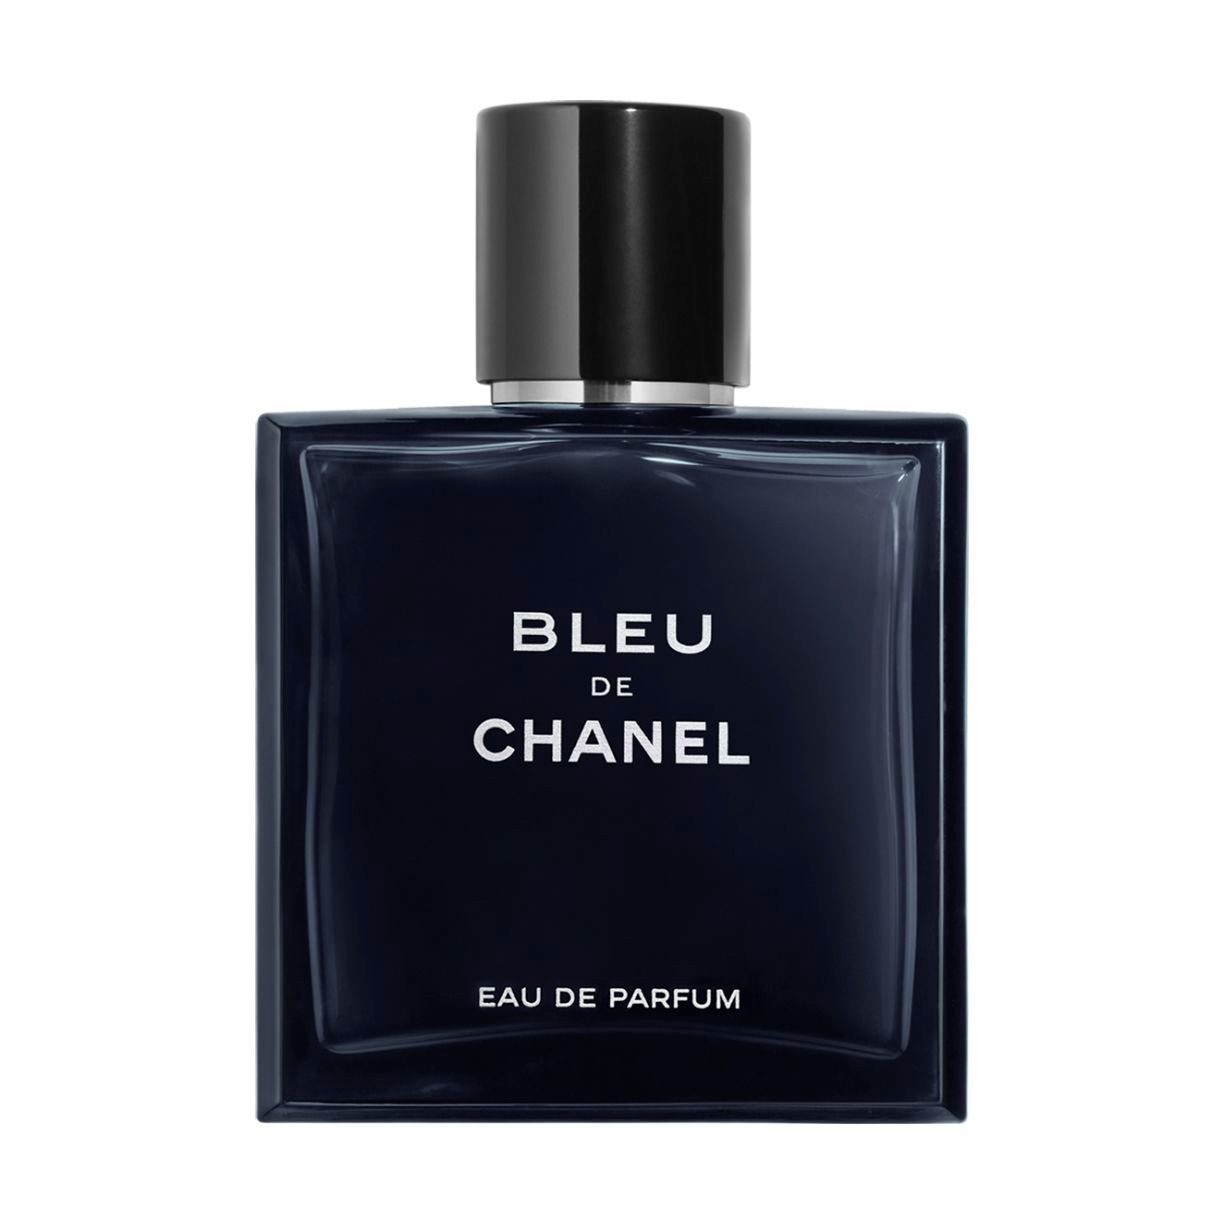 BLEU DE CHANEL EAU DE PARFUM SPRAY